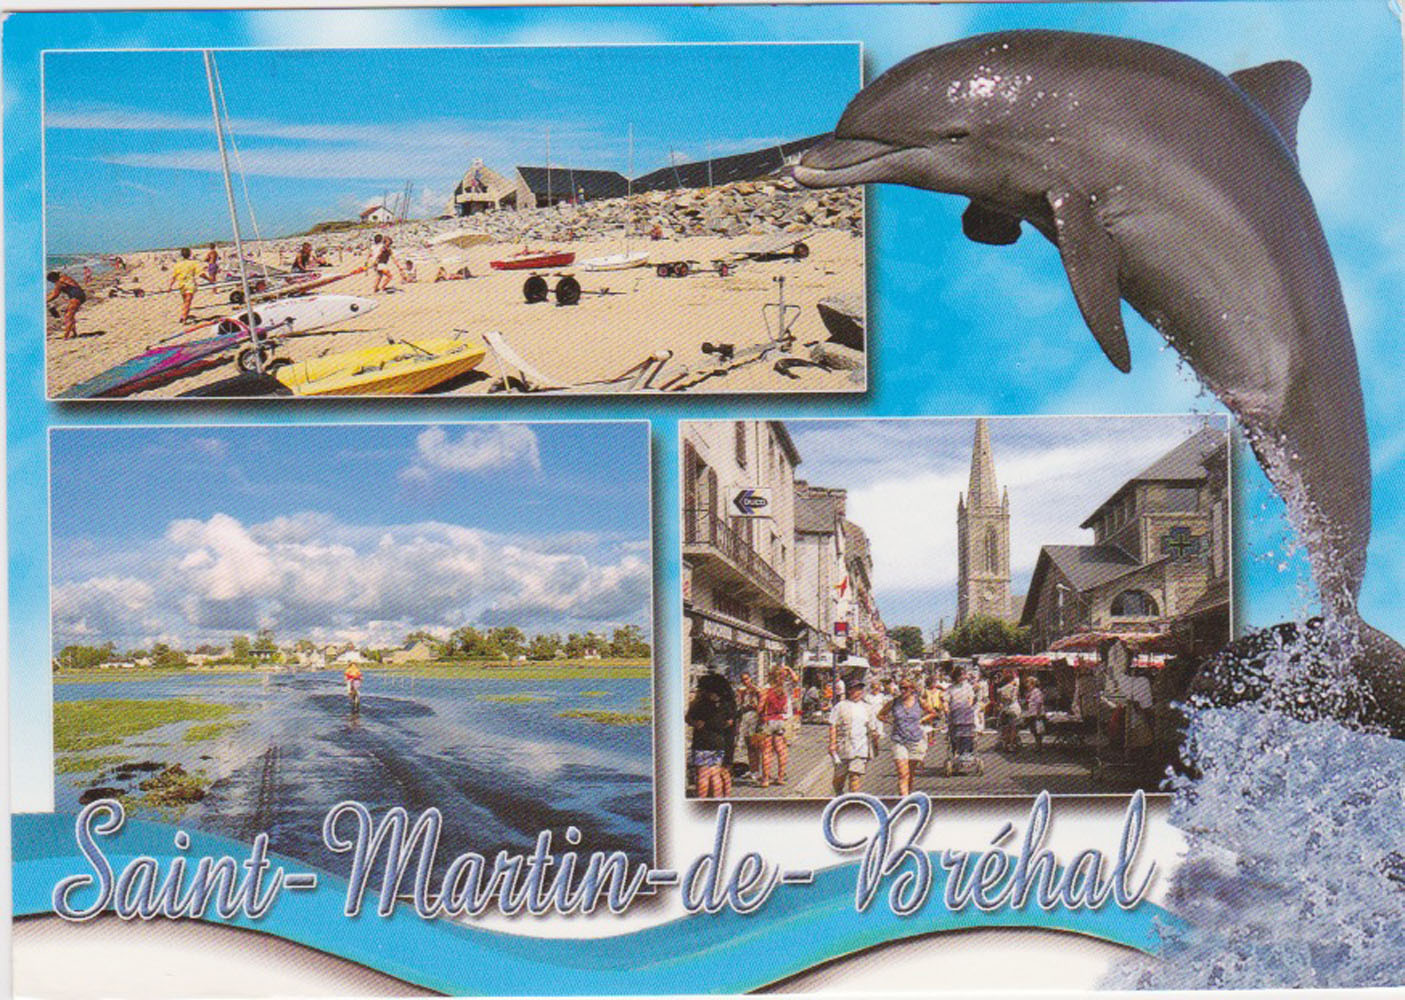 2003 St Martin Multivues Artaud © collection Jean Claude Ferret